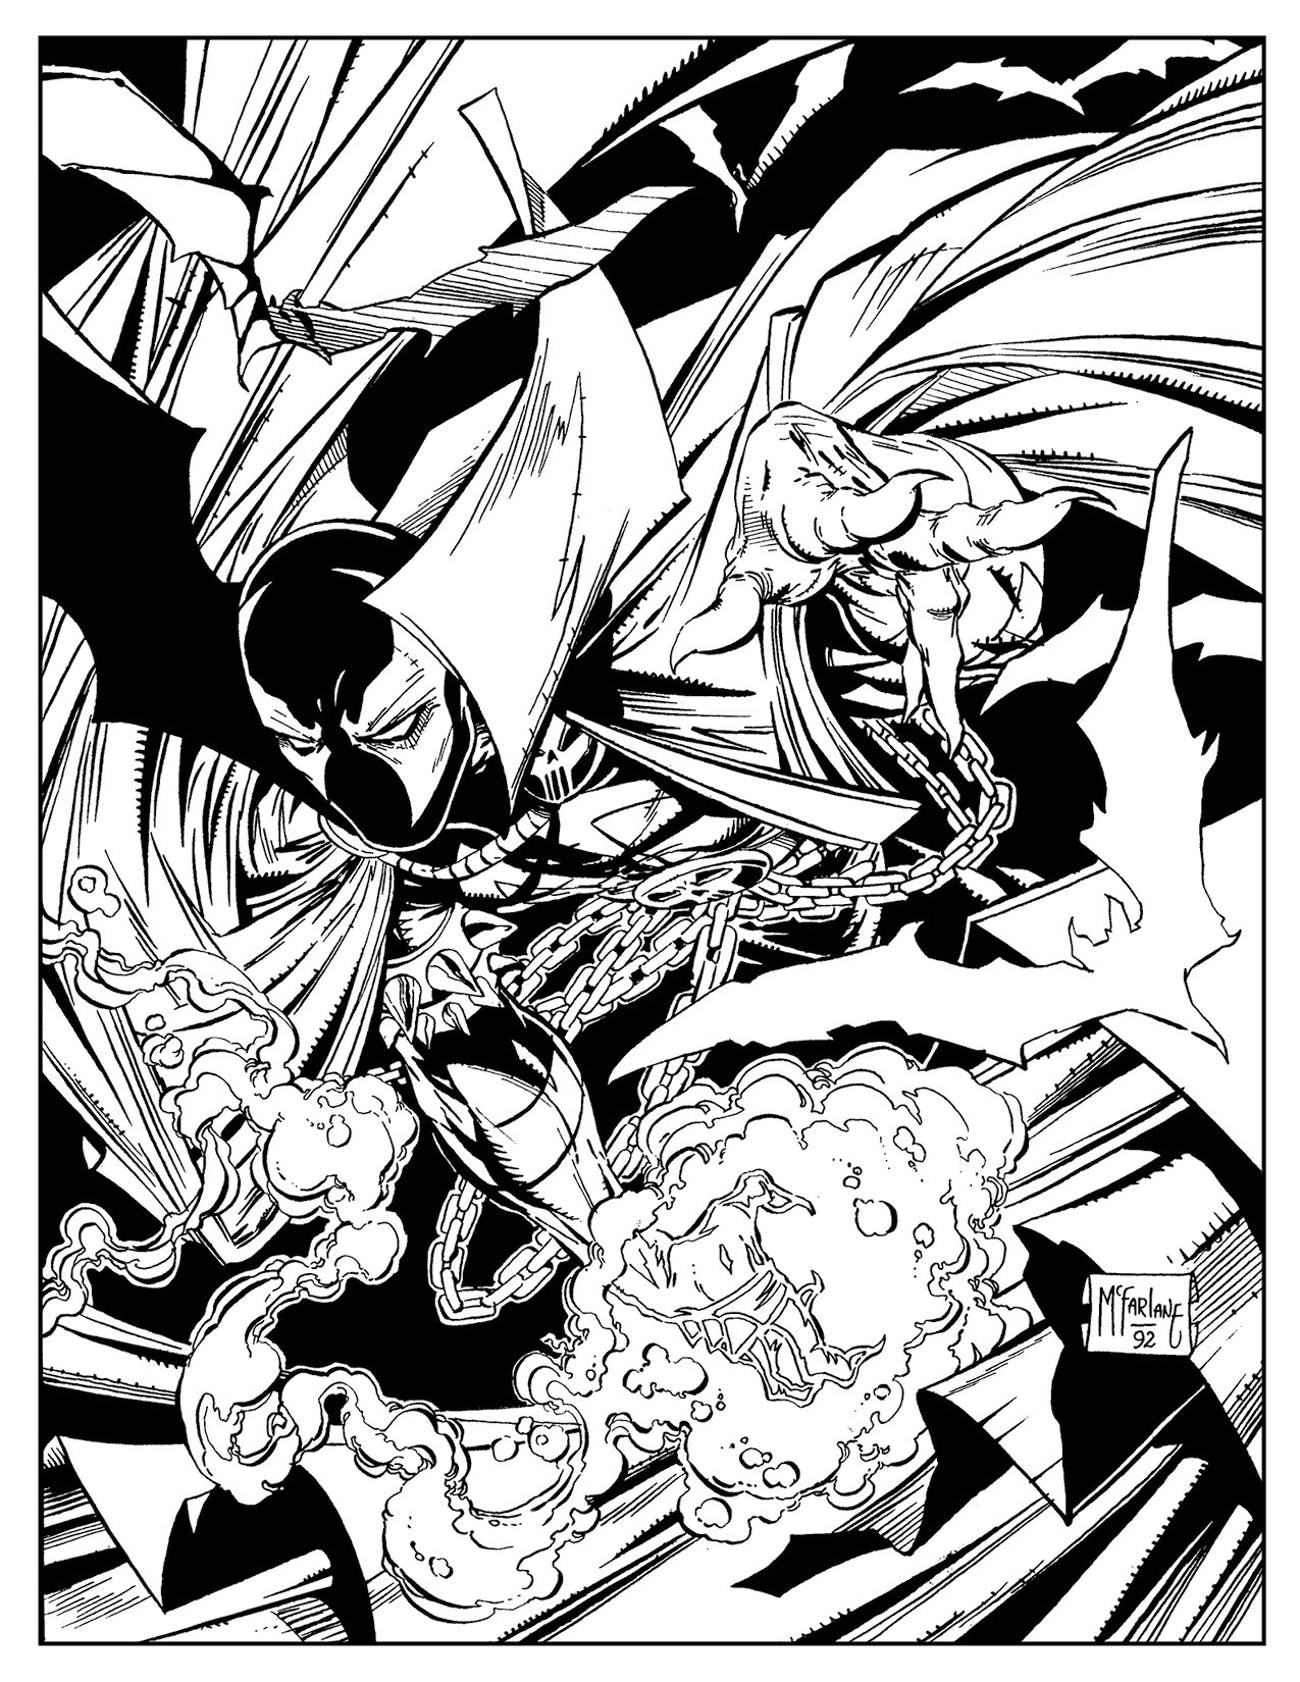 Image Comics Spawn Adult Coloring Book Is Accidental Man